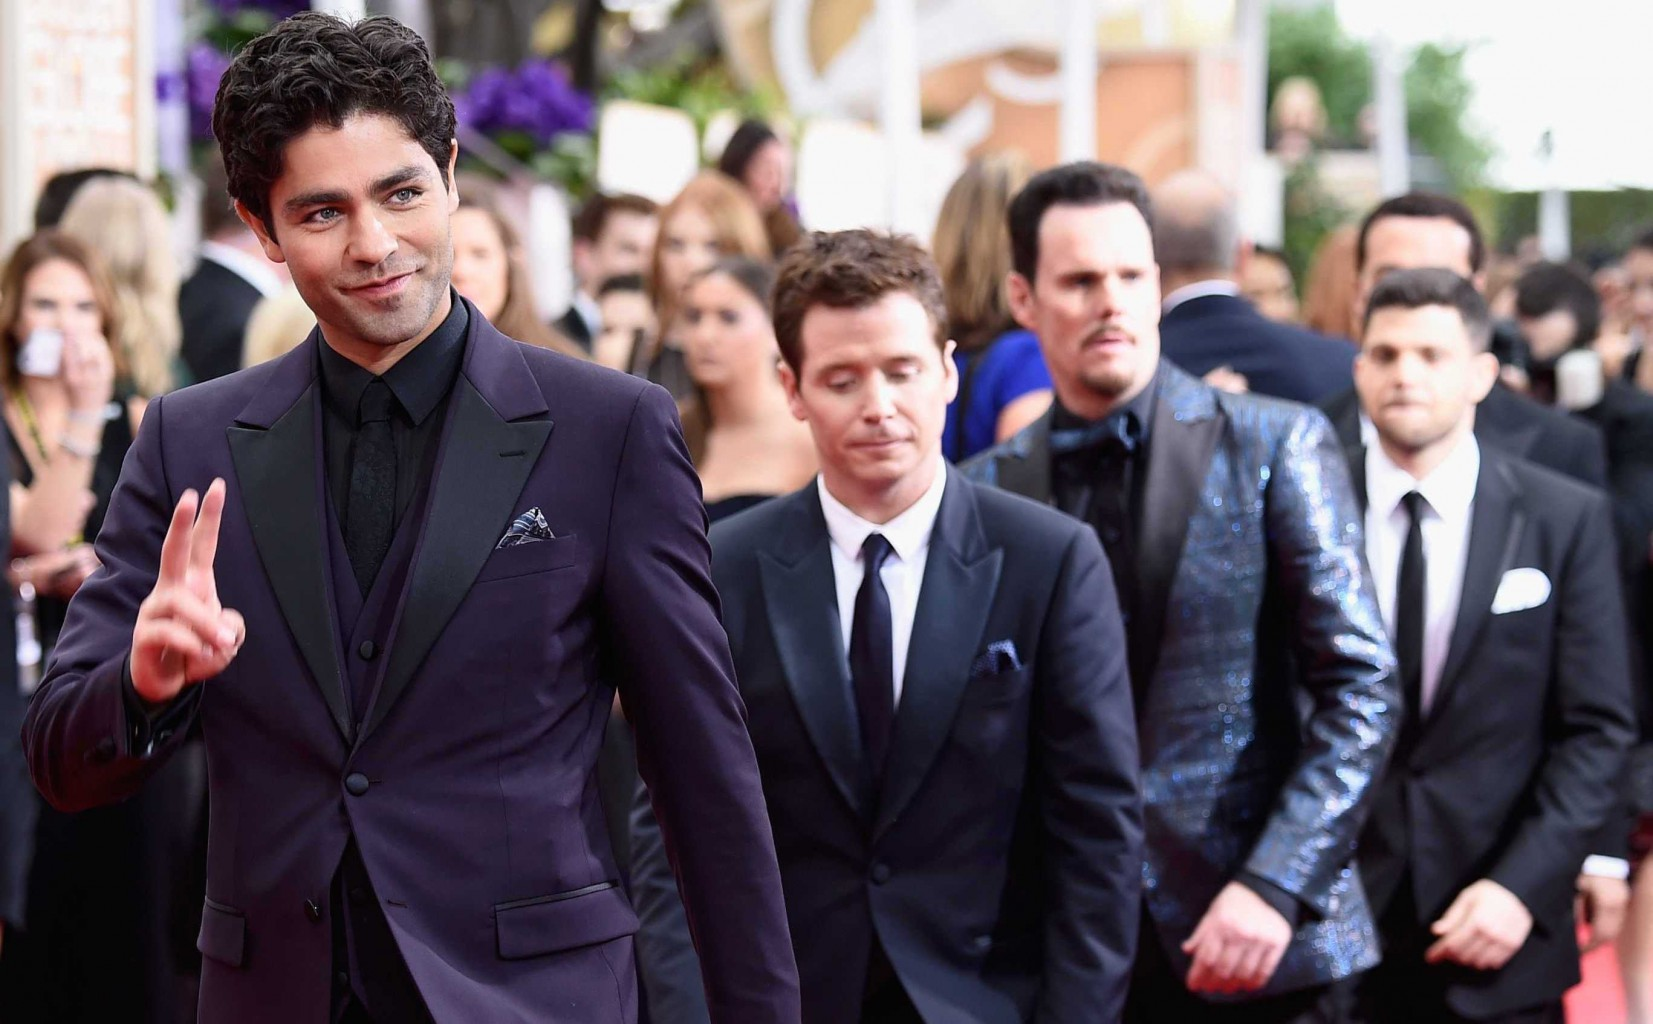 uber-is-now-mainstream-enough-that-its-used-as-a-punchline-in-the-new-entourage-movie